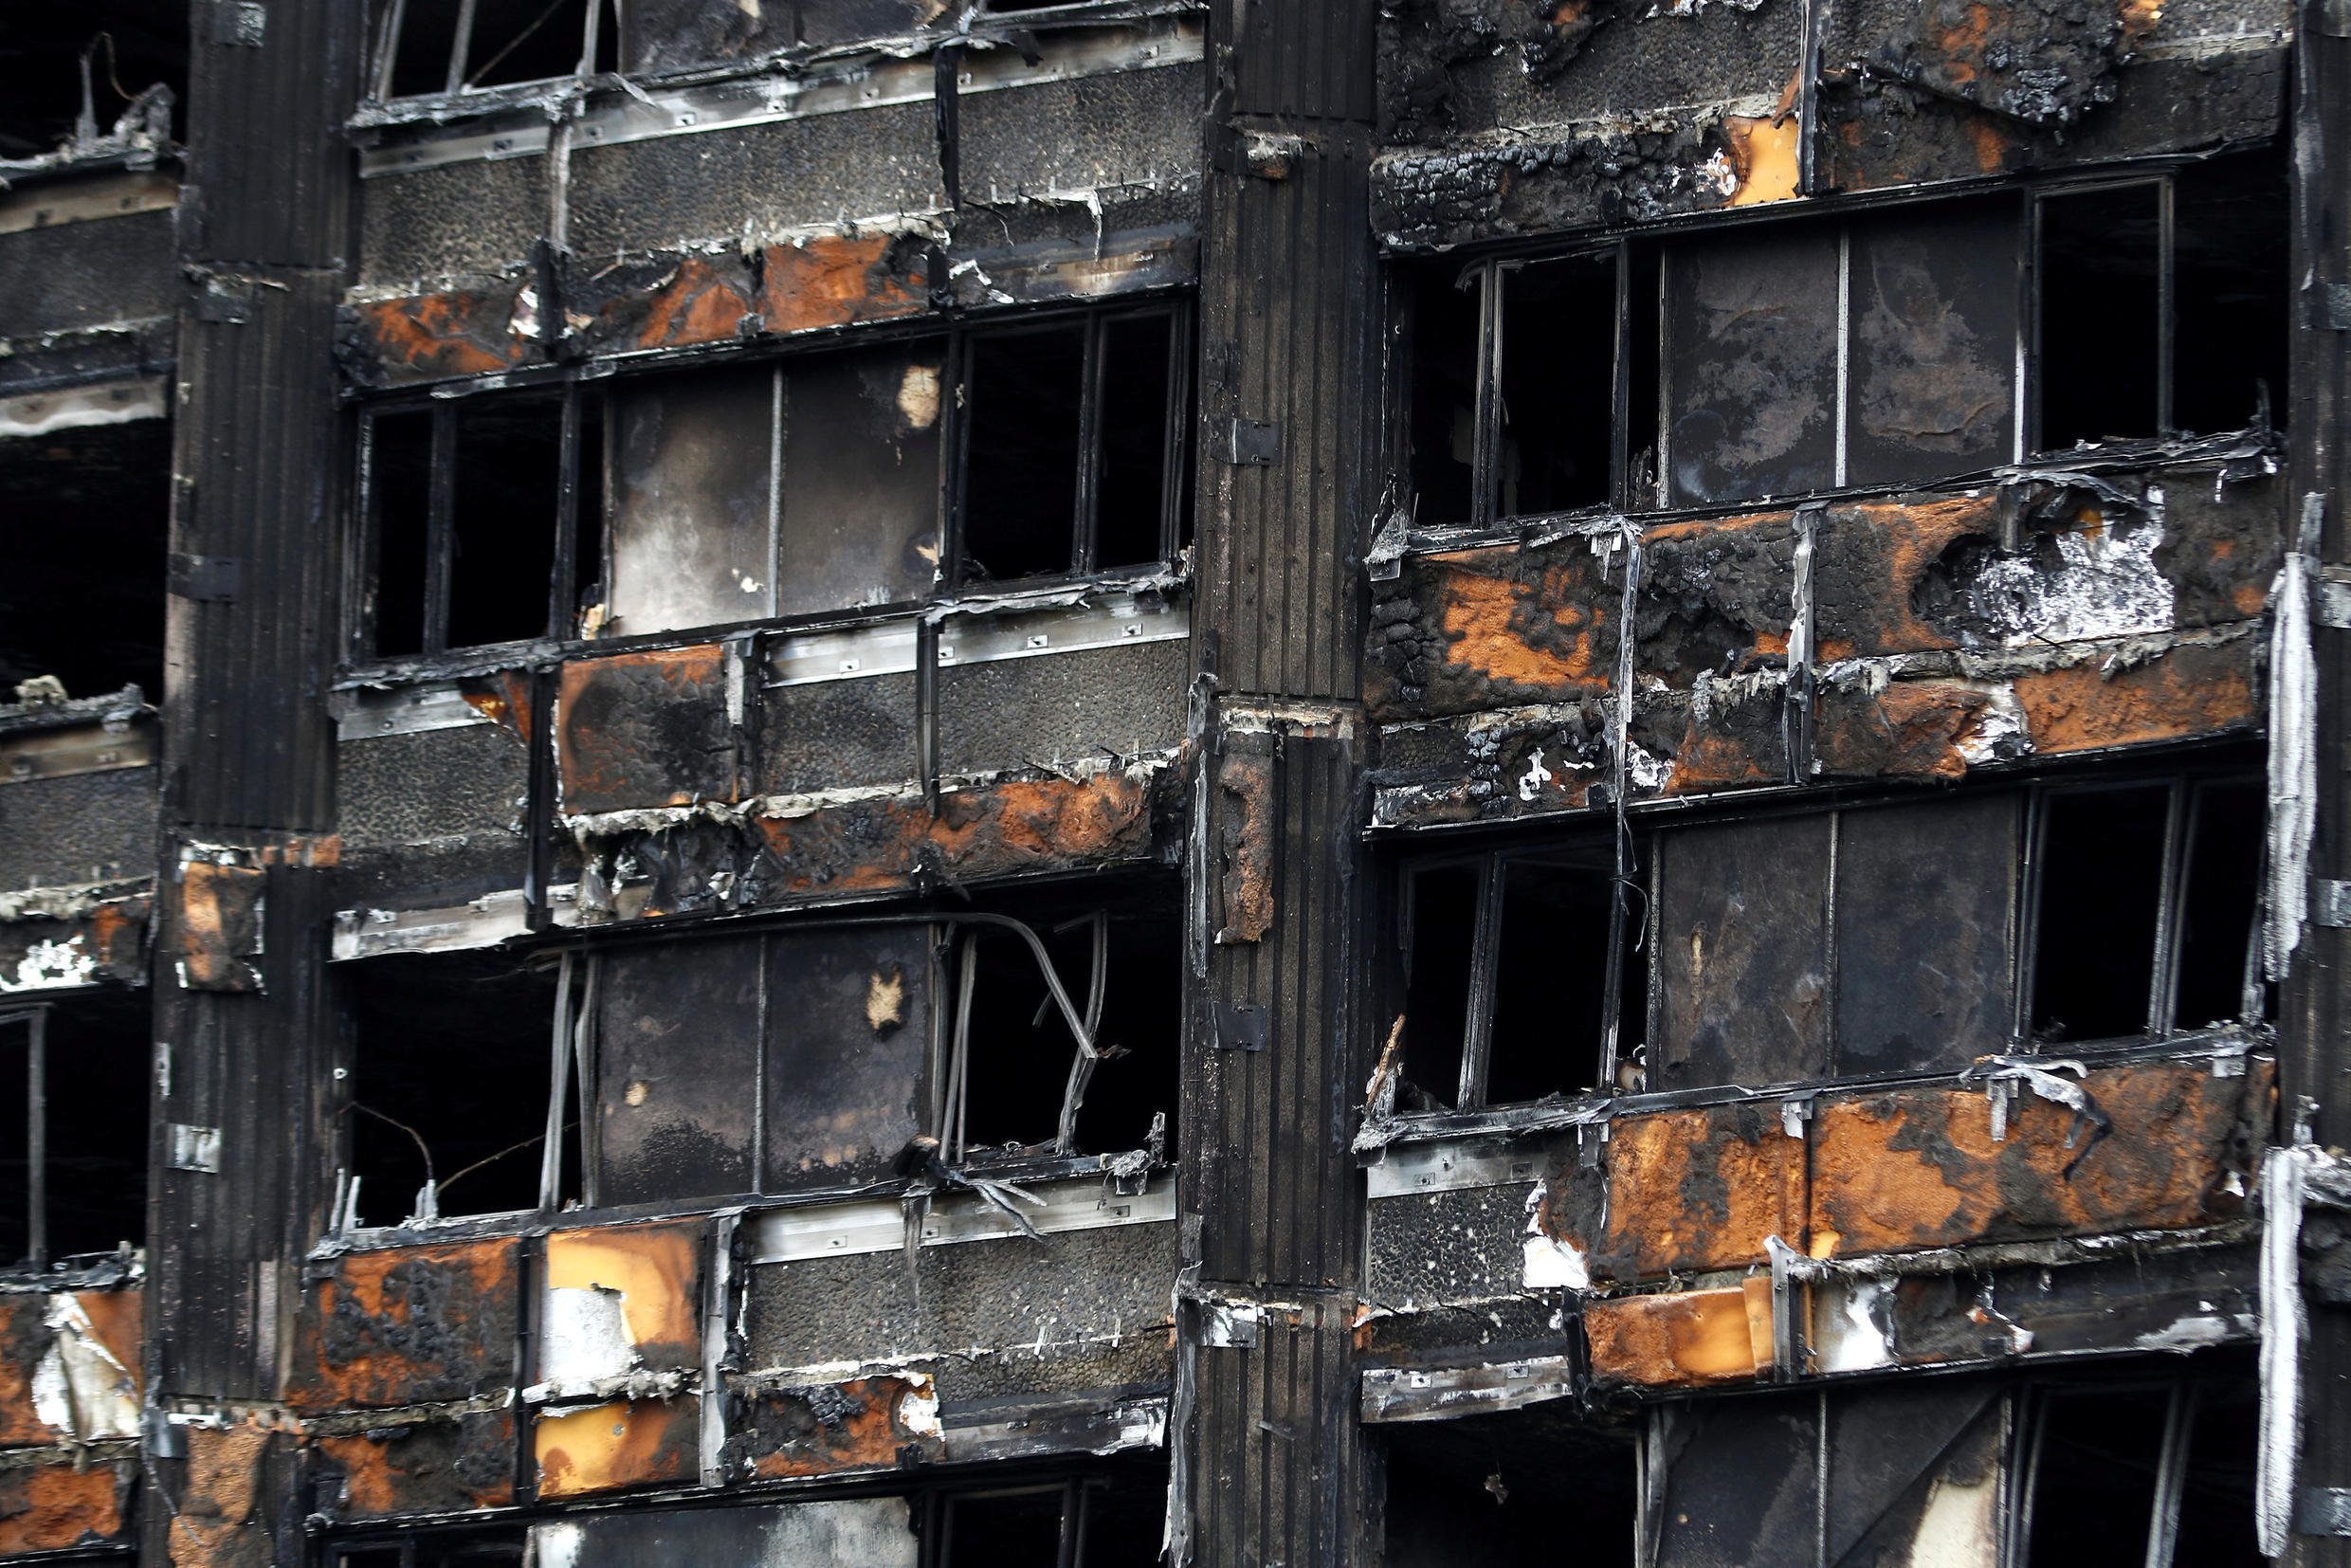 The scorched facade of Grenfell Tower after the blaze